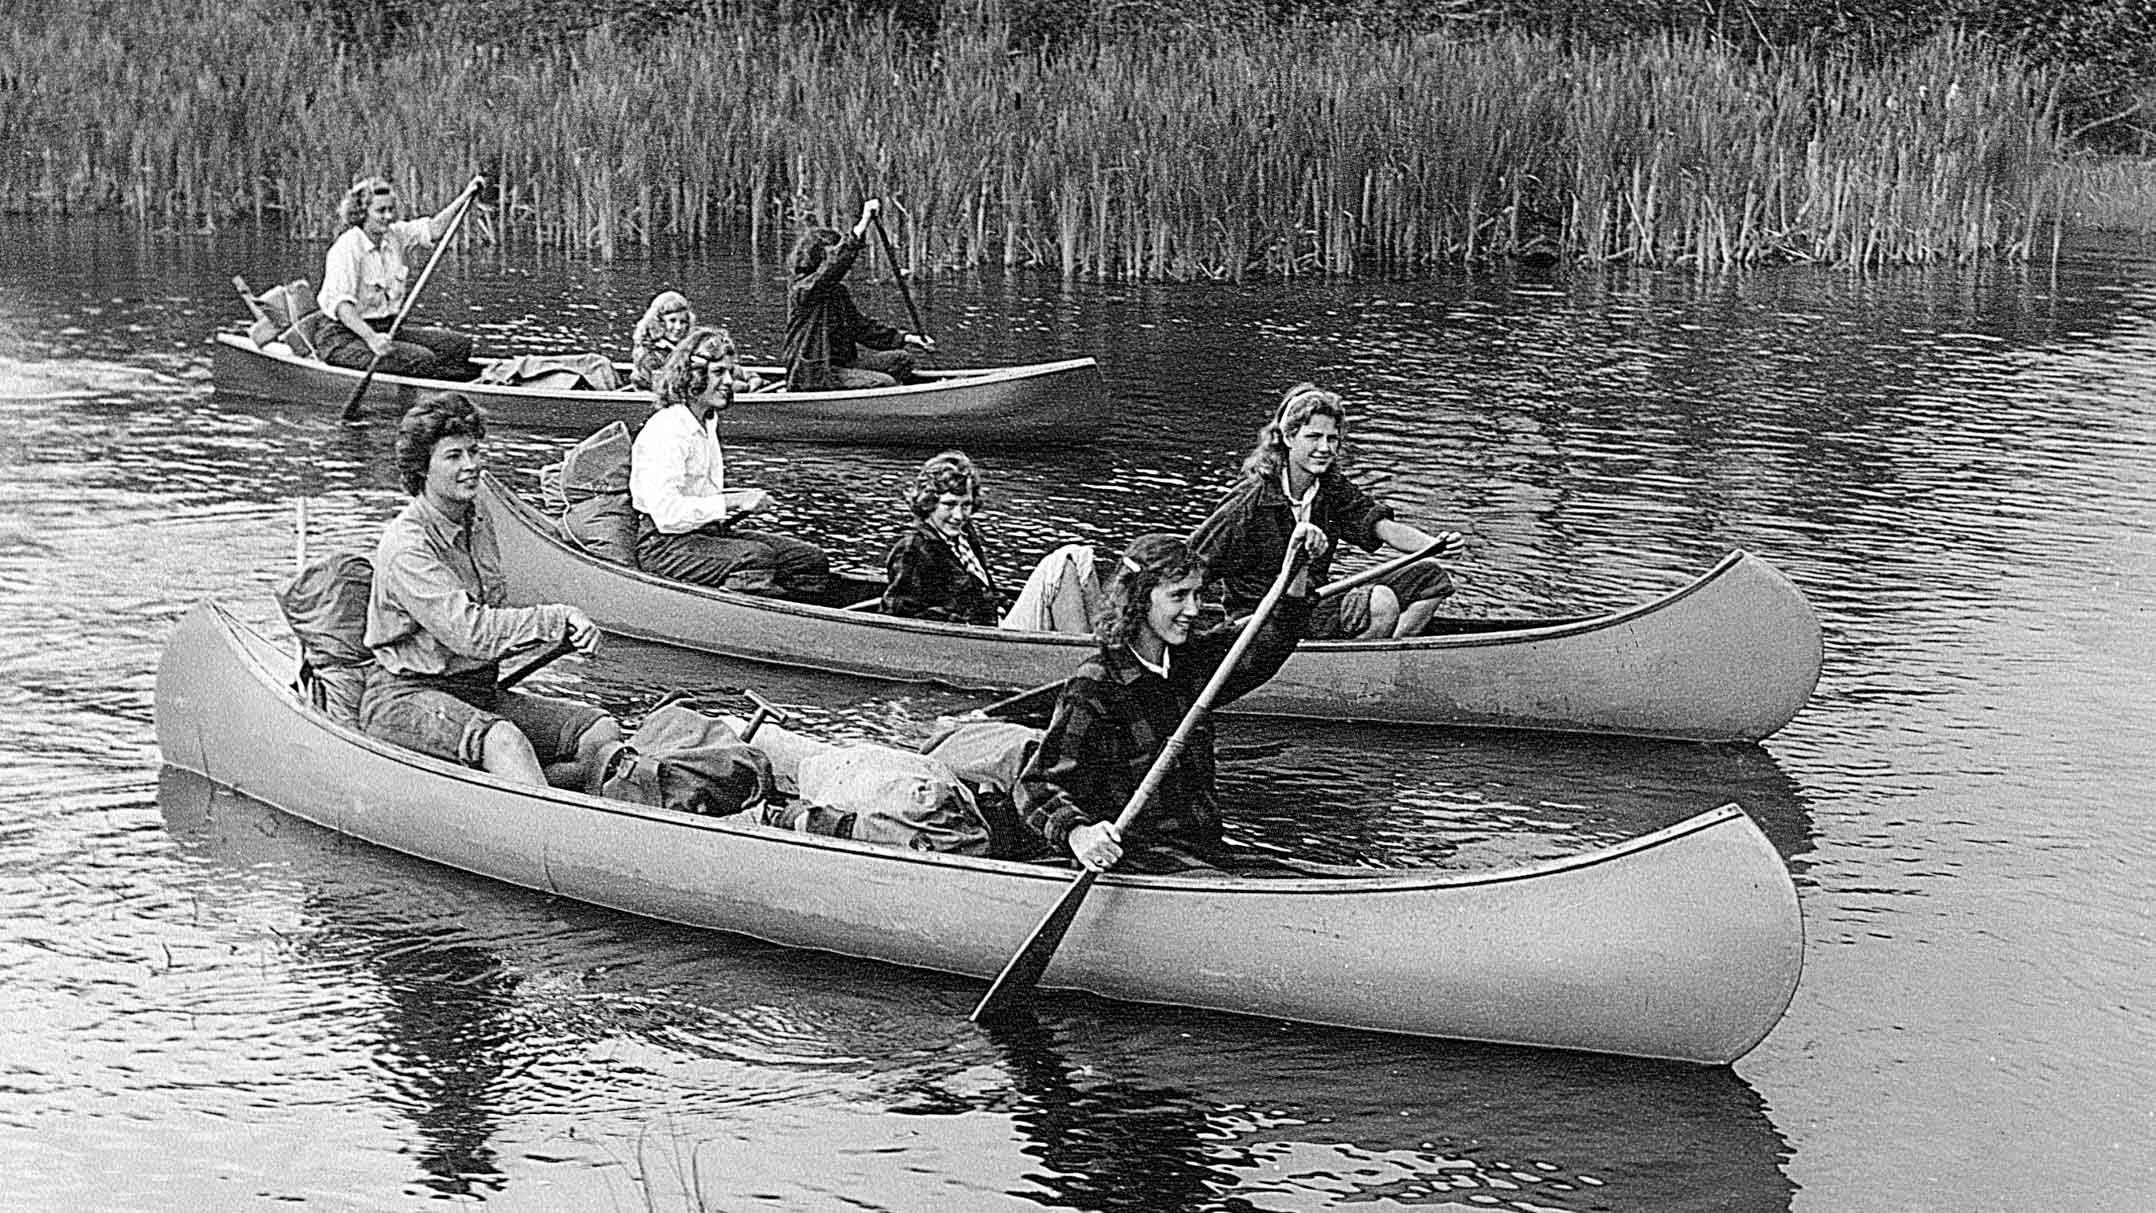 1948 photo of campers taking a canoe trip